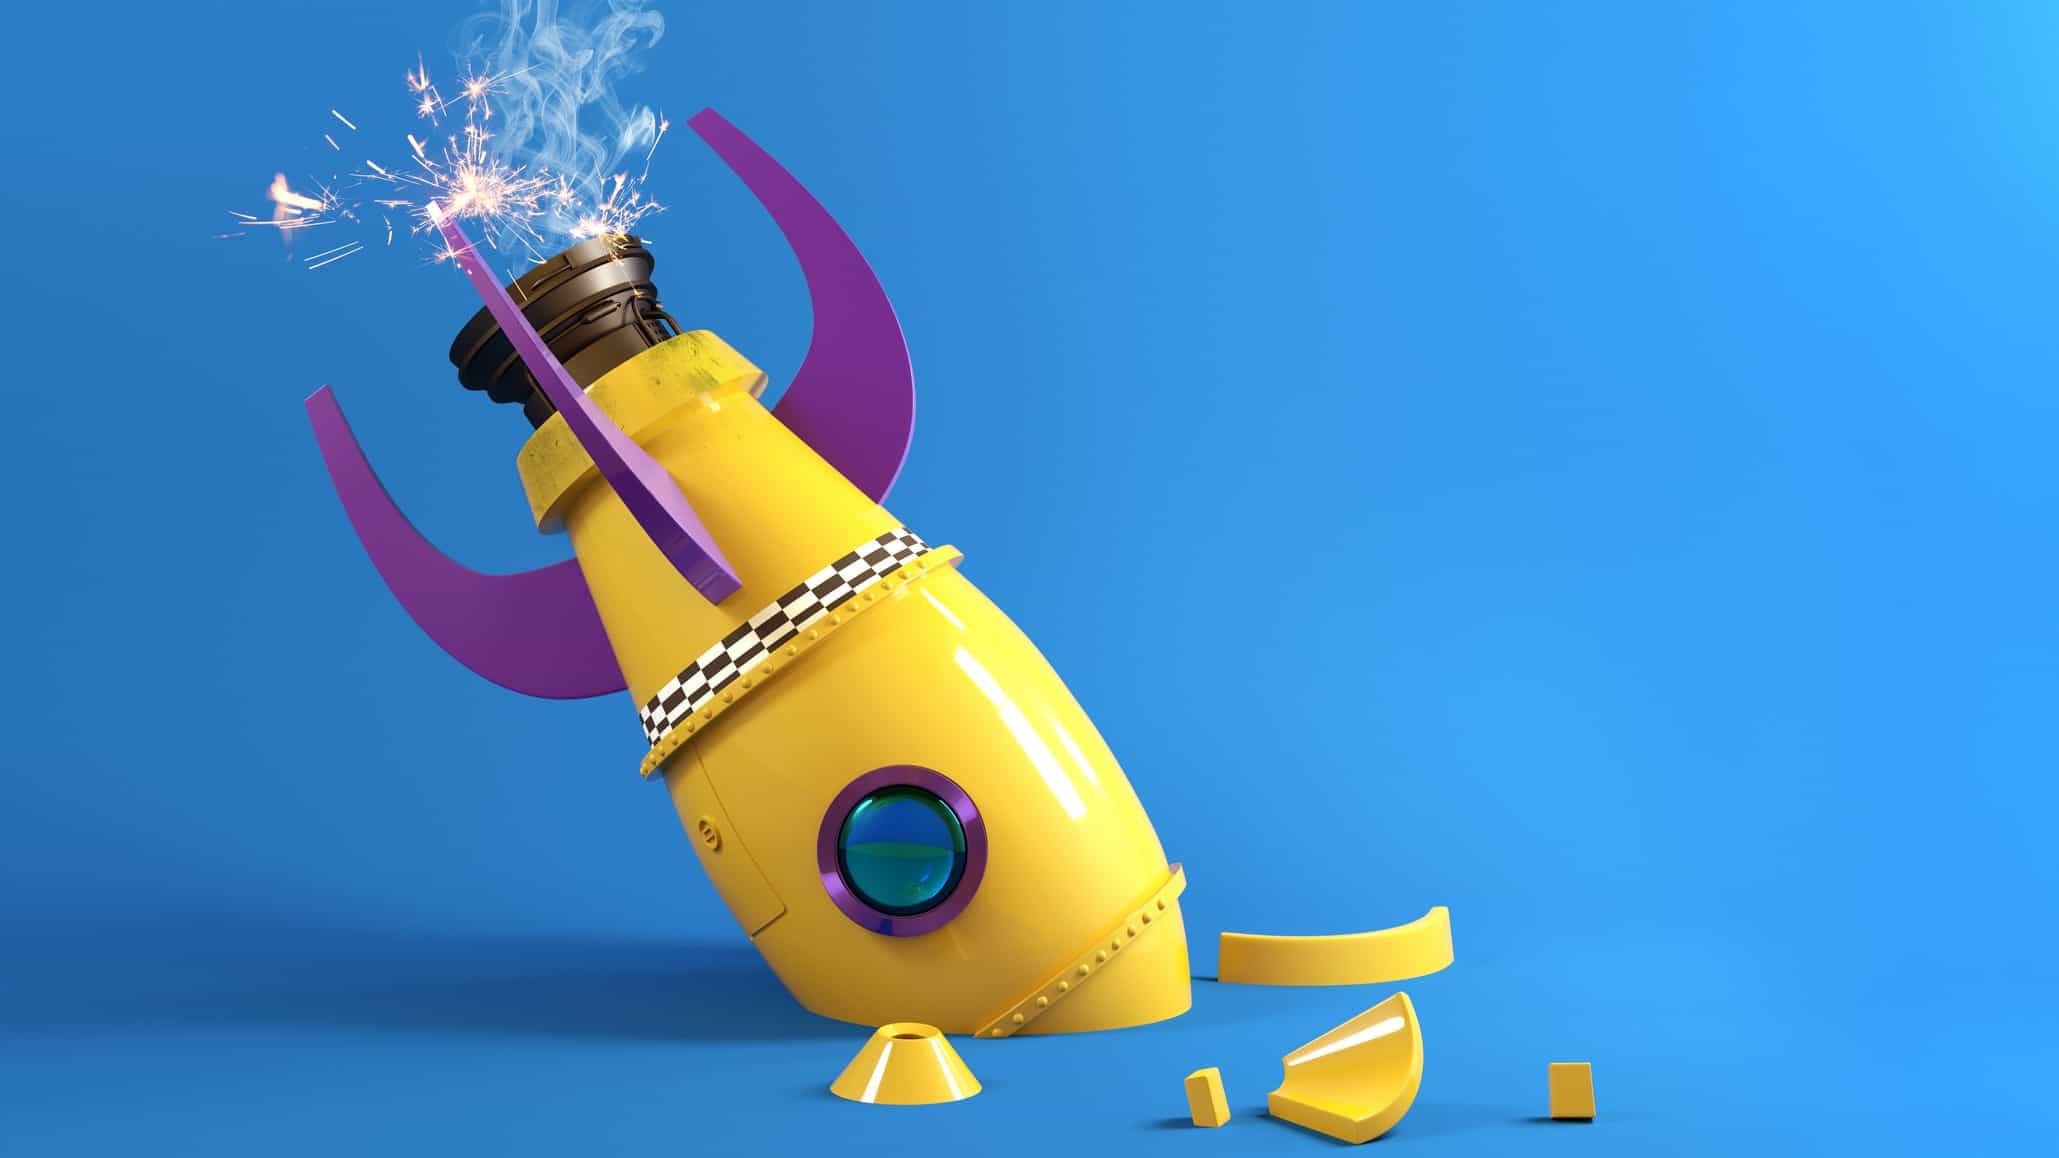 toy rocket crashed